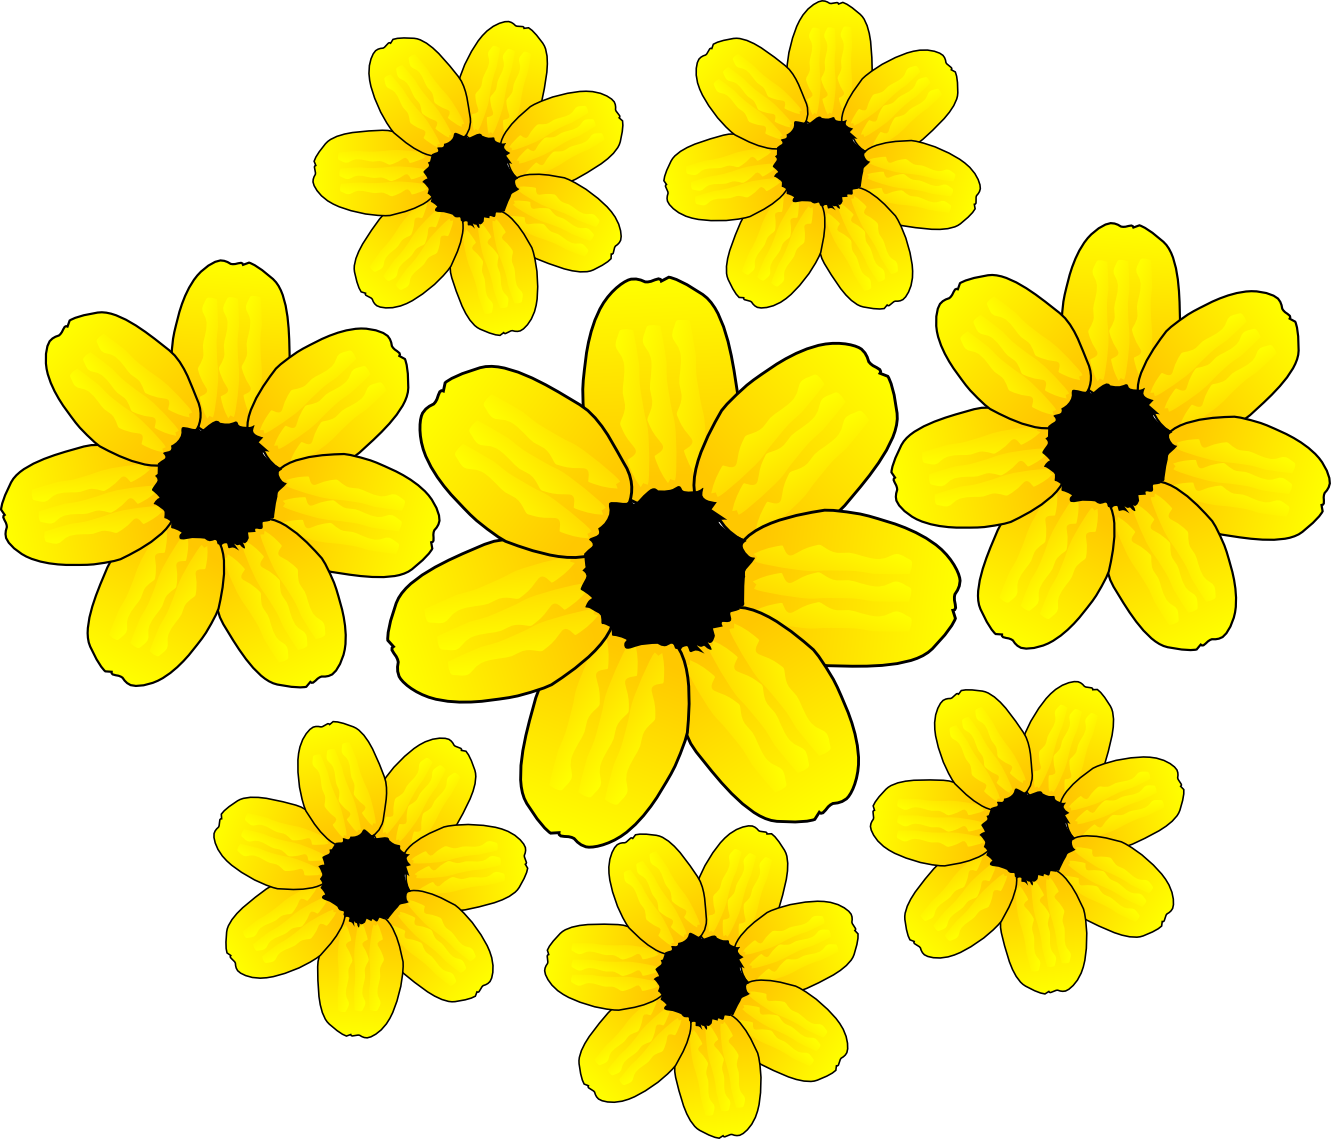 Yellow Flower Clip Art - ClipArt Best | -Yellow Flower Clip Art - ClipArt Best | clip art...gmk | Pinterest | The 3, Graphics and Changu0026#39;e 3-6